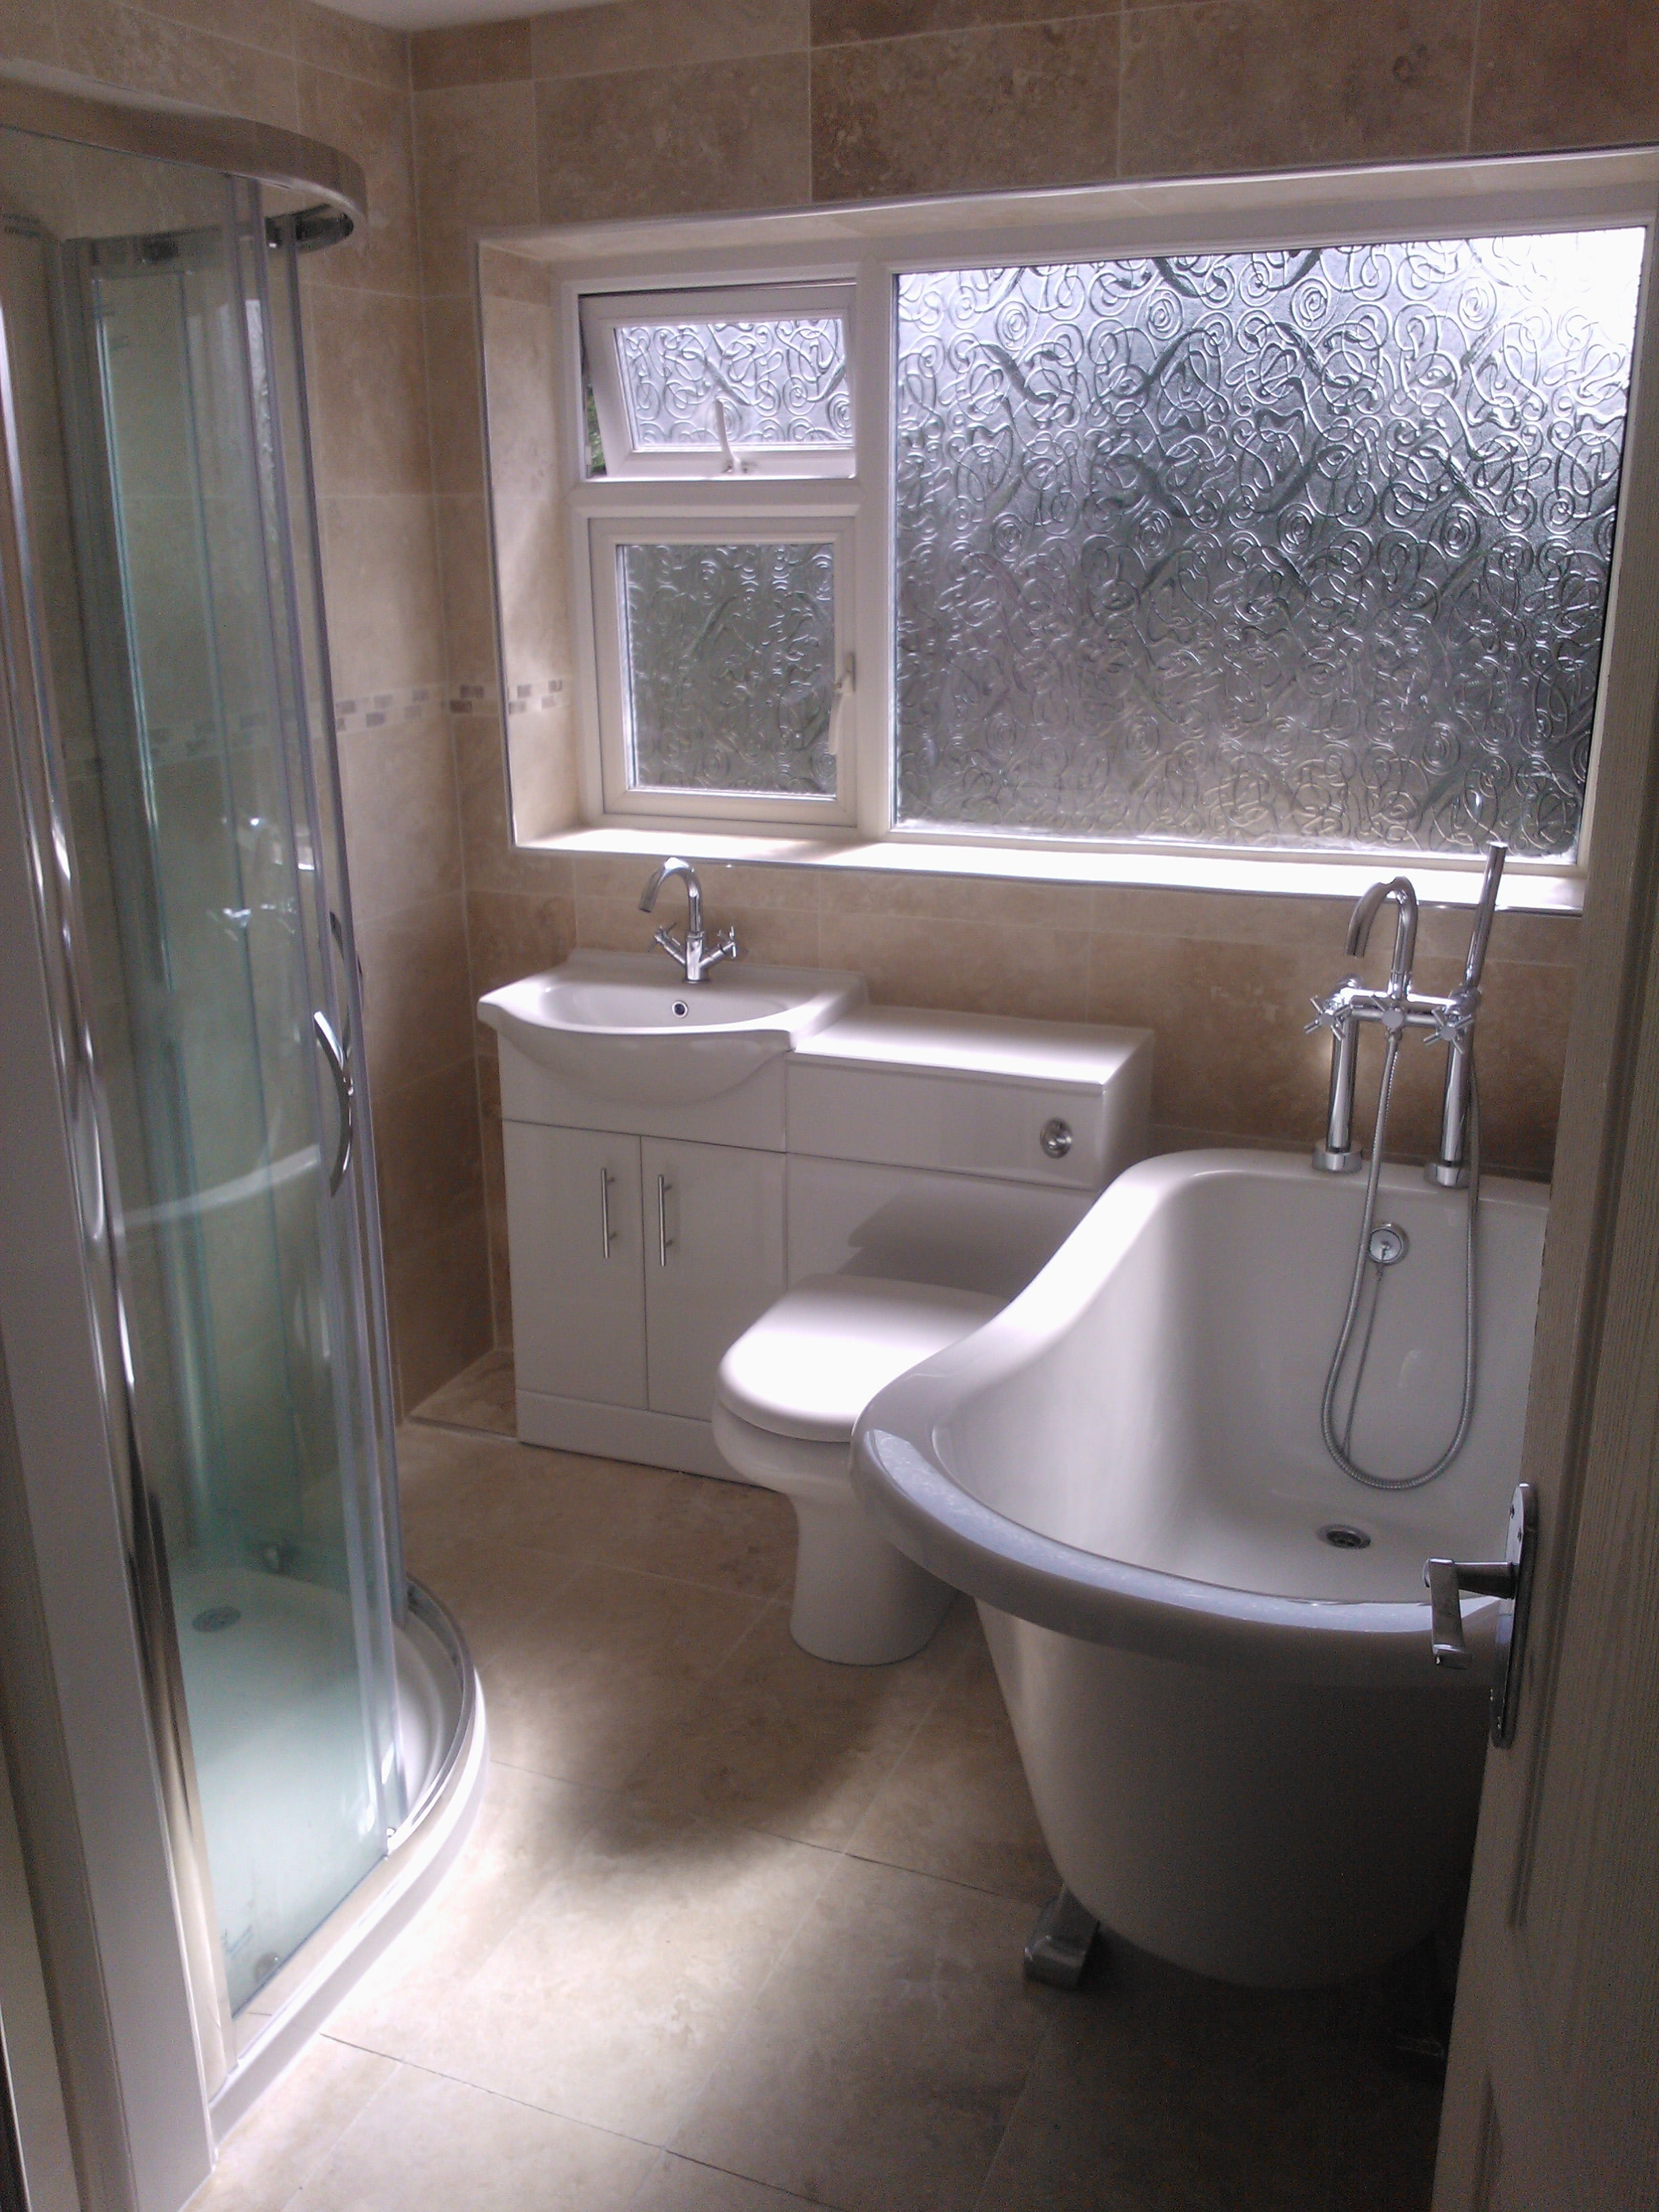 new bathroom with bath, shower, sink and toilet.